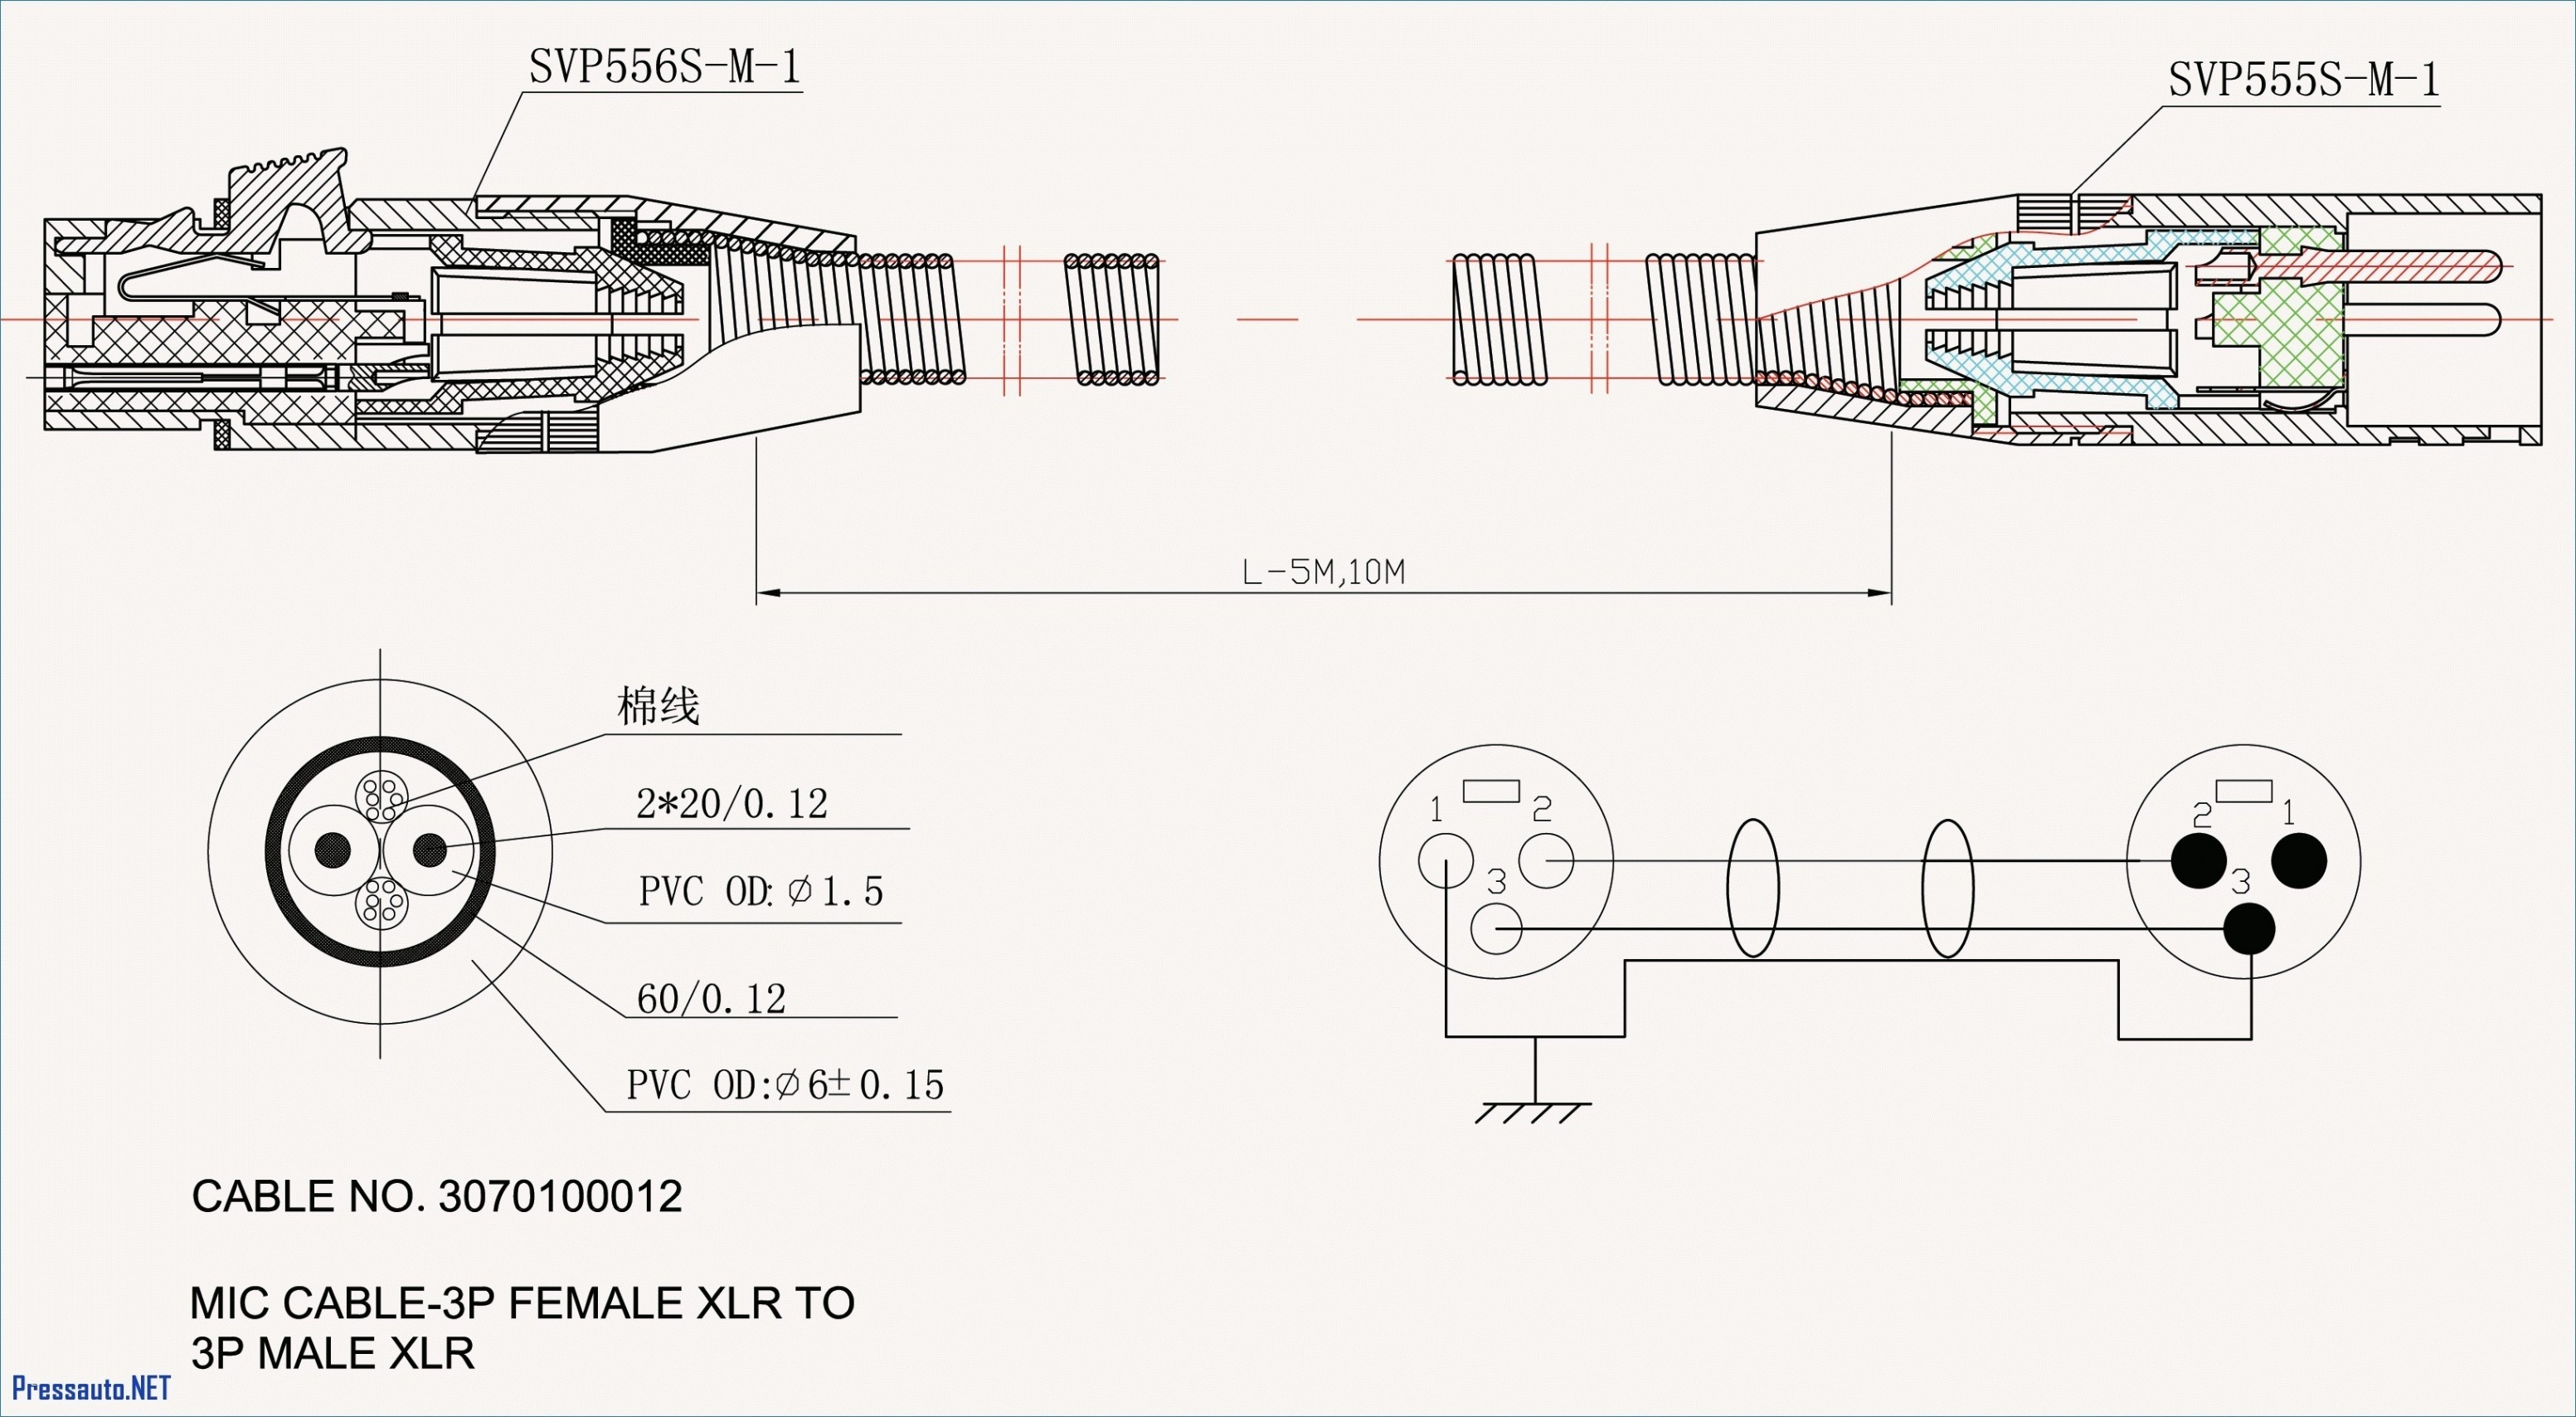 turtle beach wiring diagram Collection-Headphone With Mic Wiring Diagram 8-m